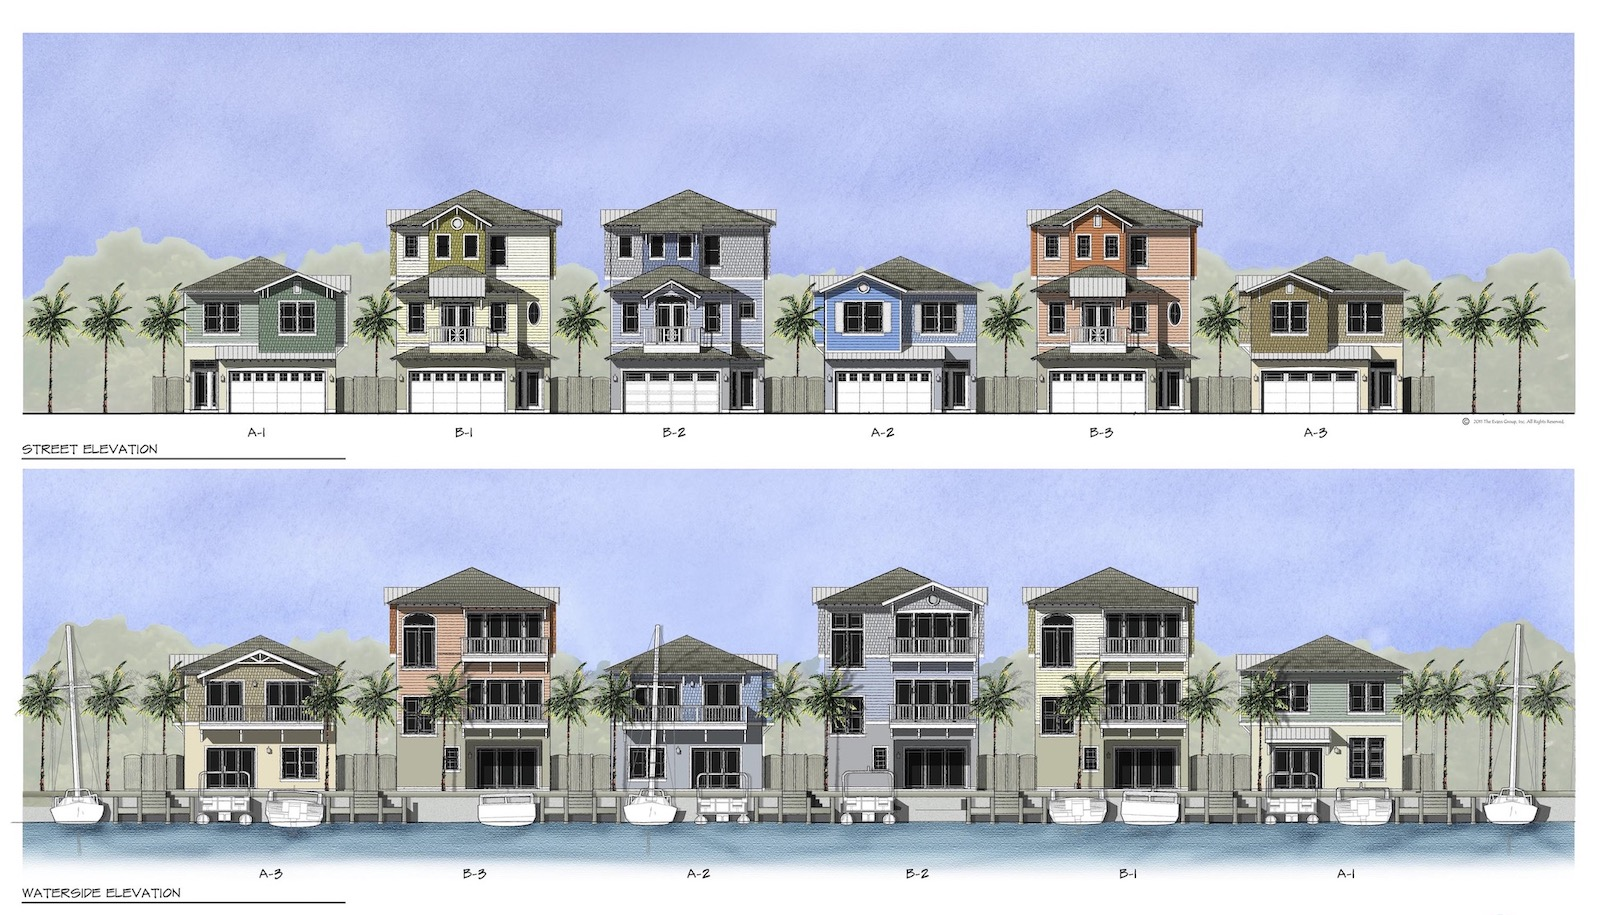 Exterior elevations of Sunset Inlet designed by The Evans Group